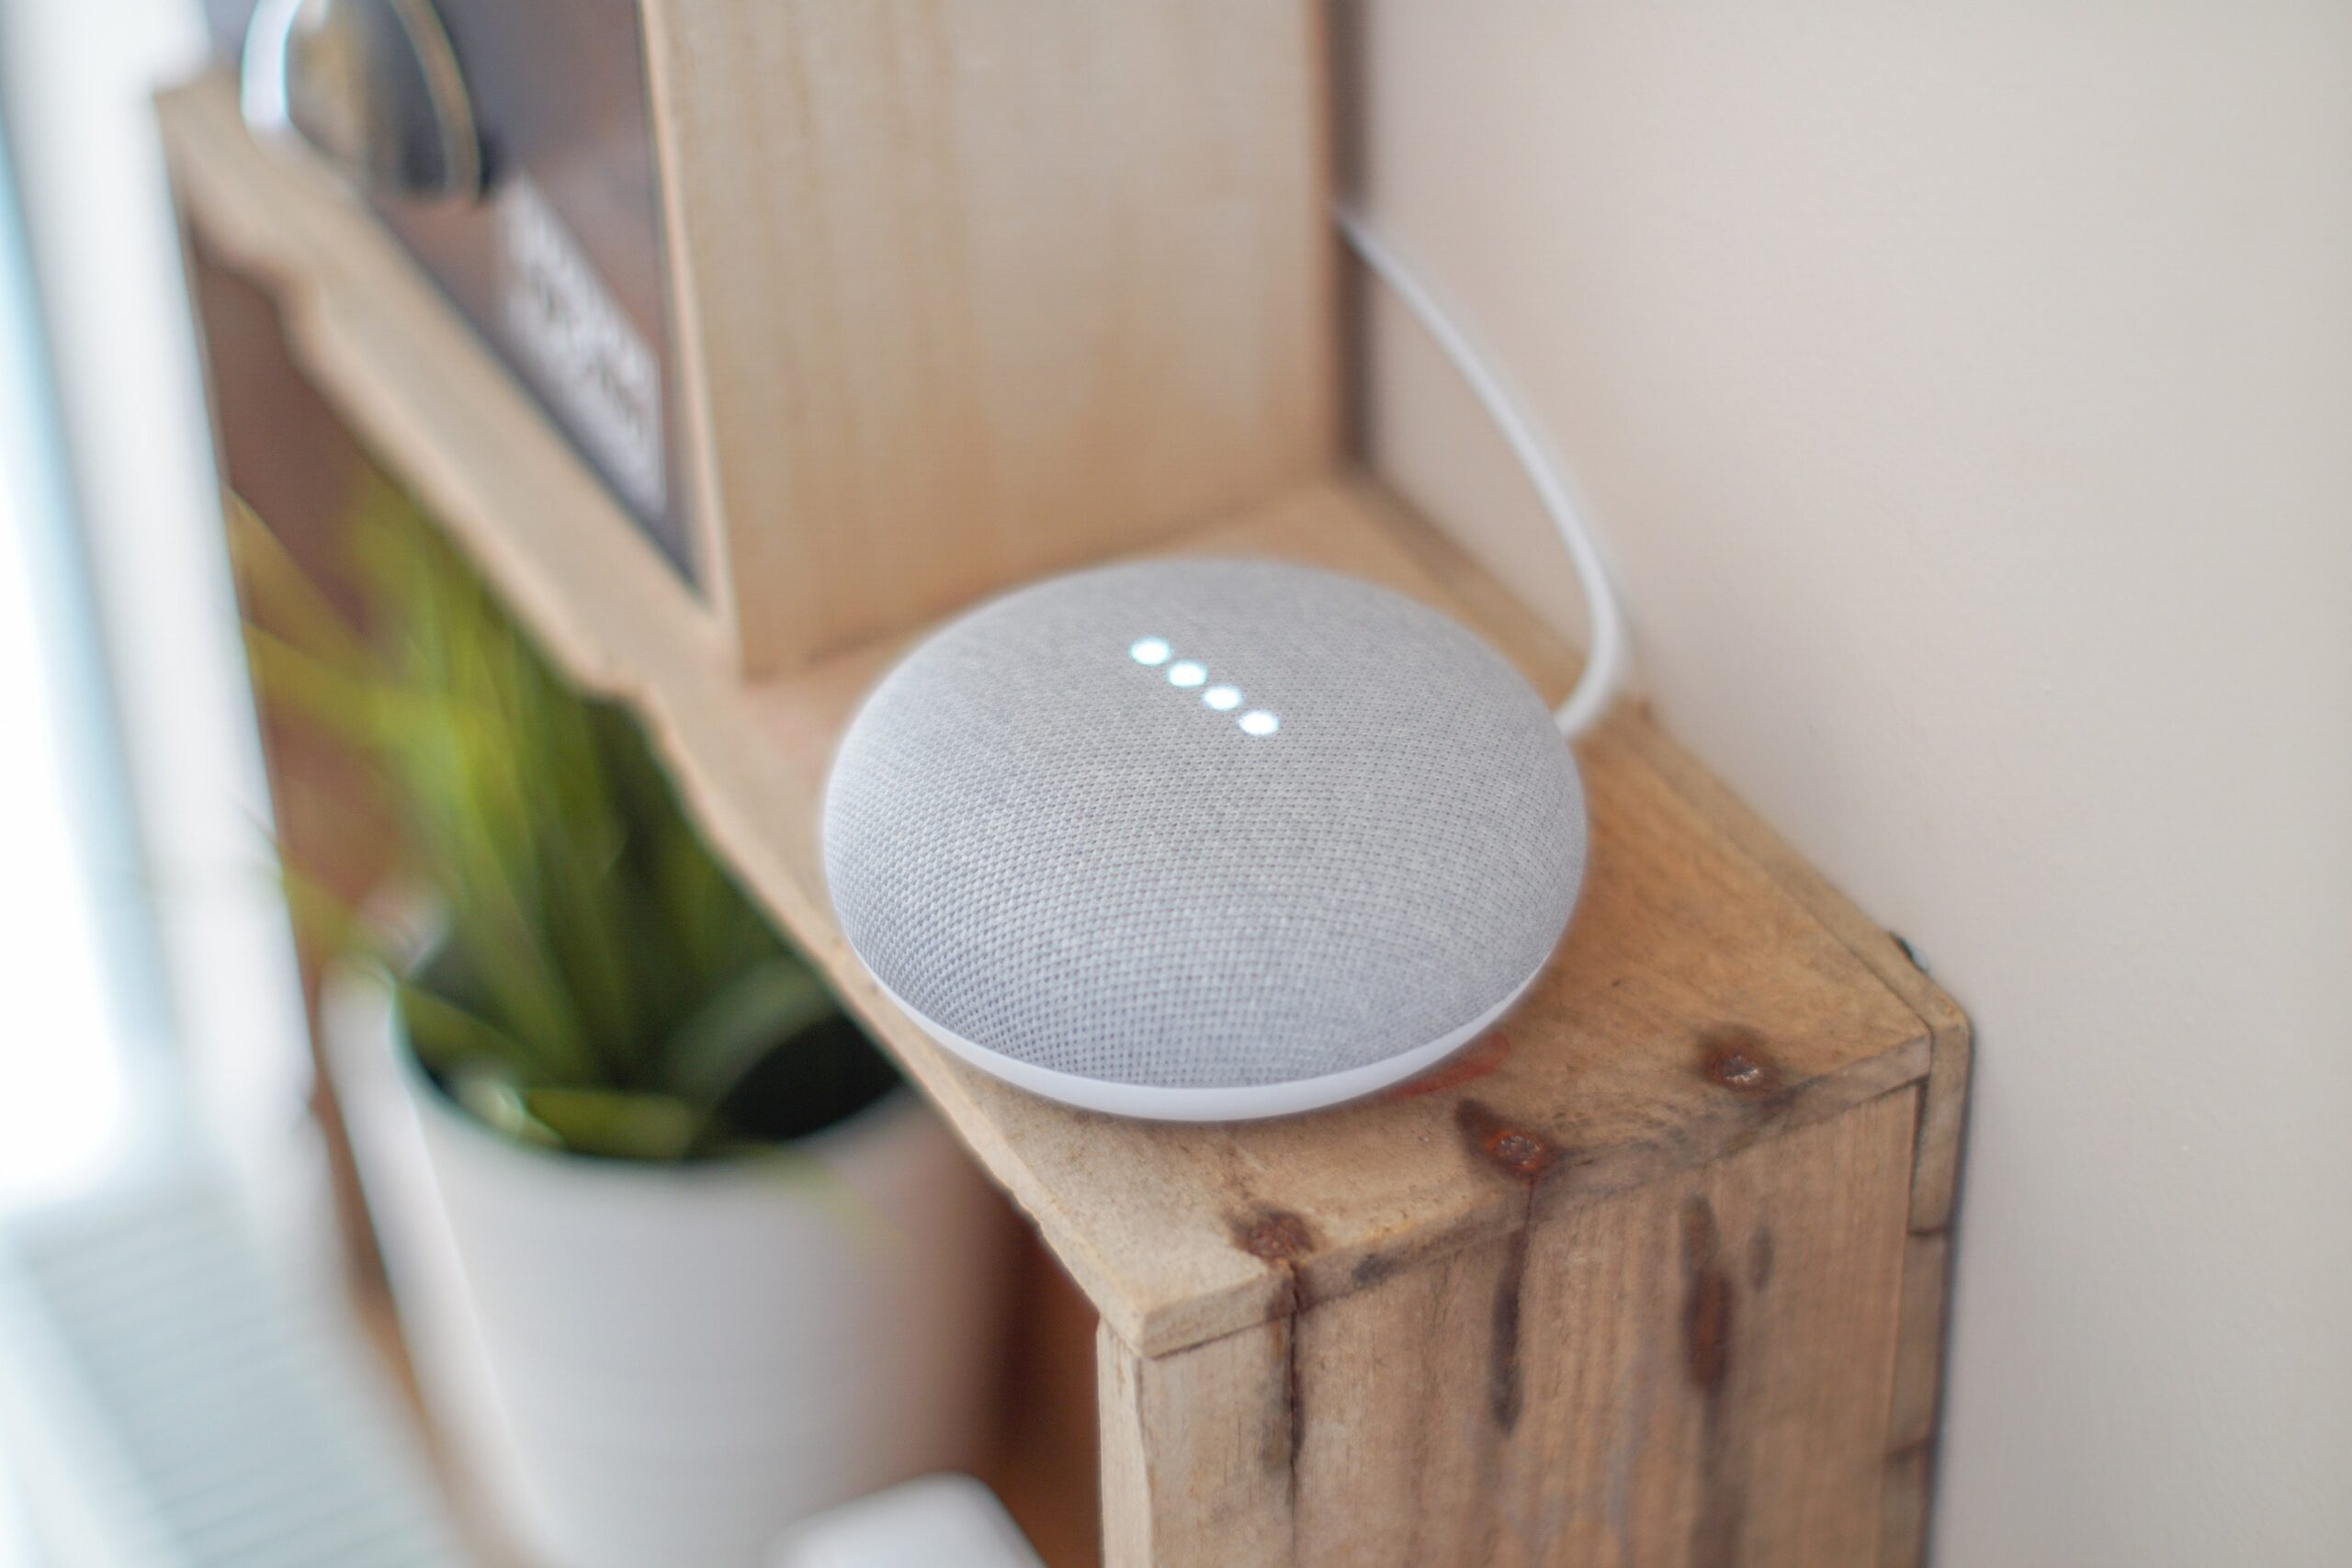 Your smart home is here